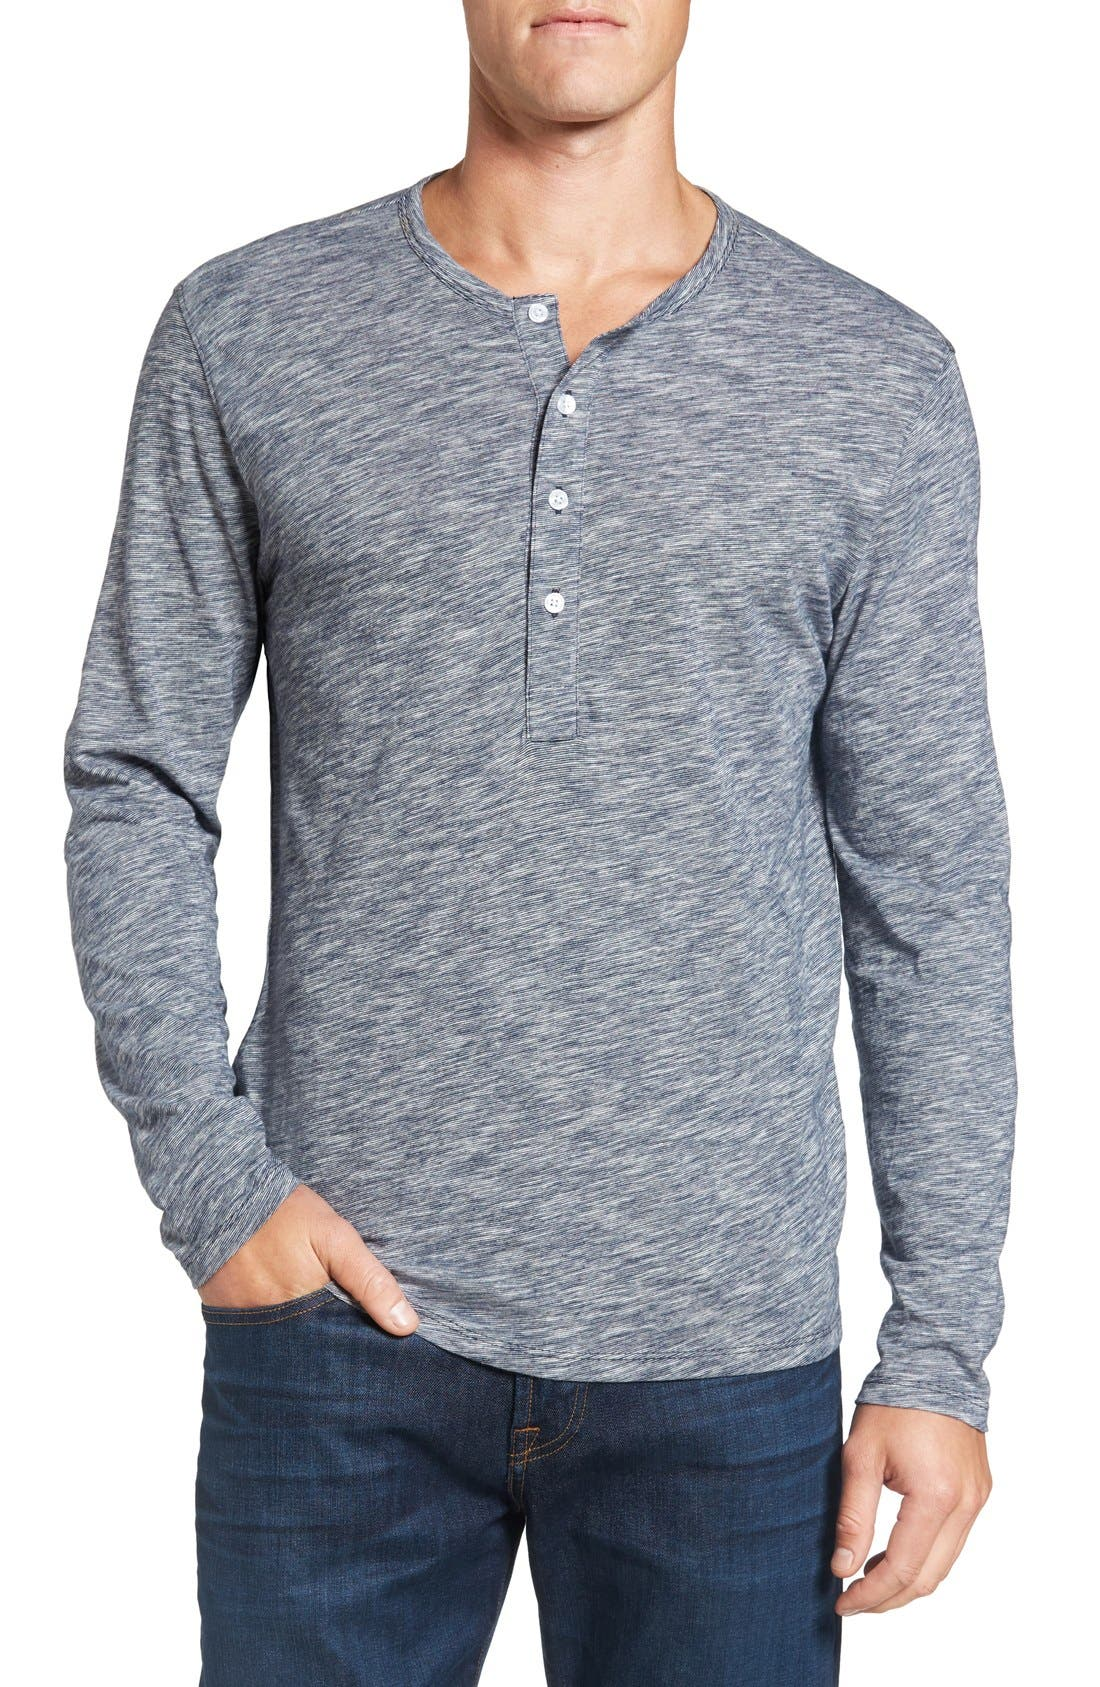 Alternate Image 1 Selected - Bonobos Slim Fit Cotton Henley